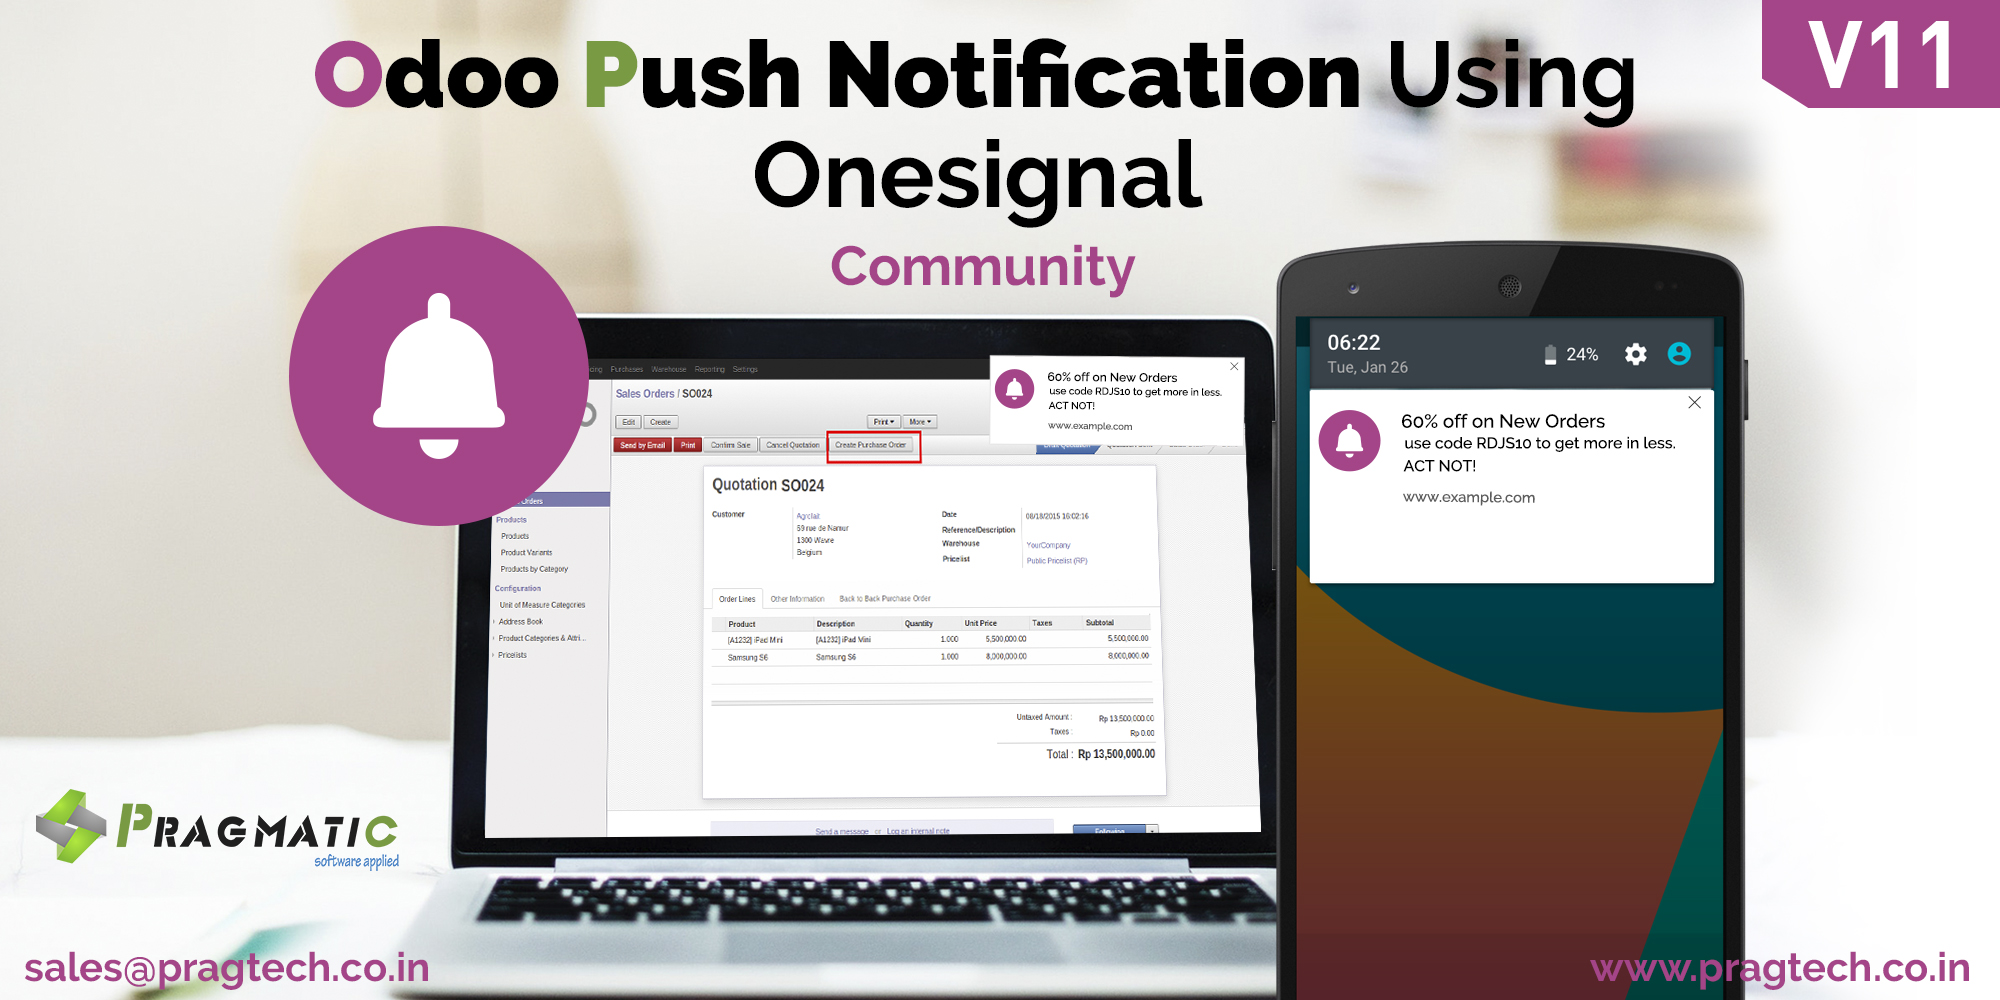 Odoo Push Notification Using Onesignal